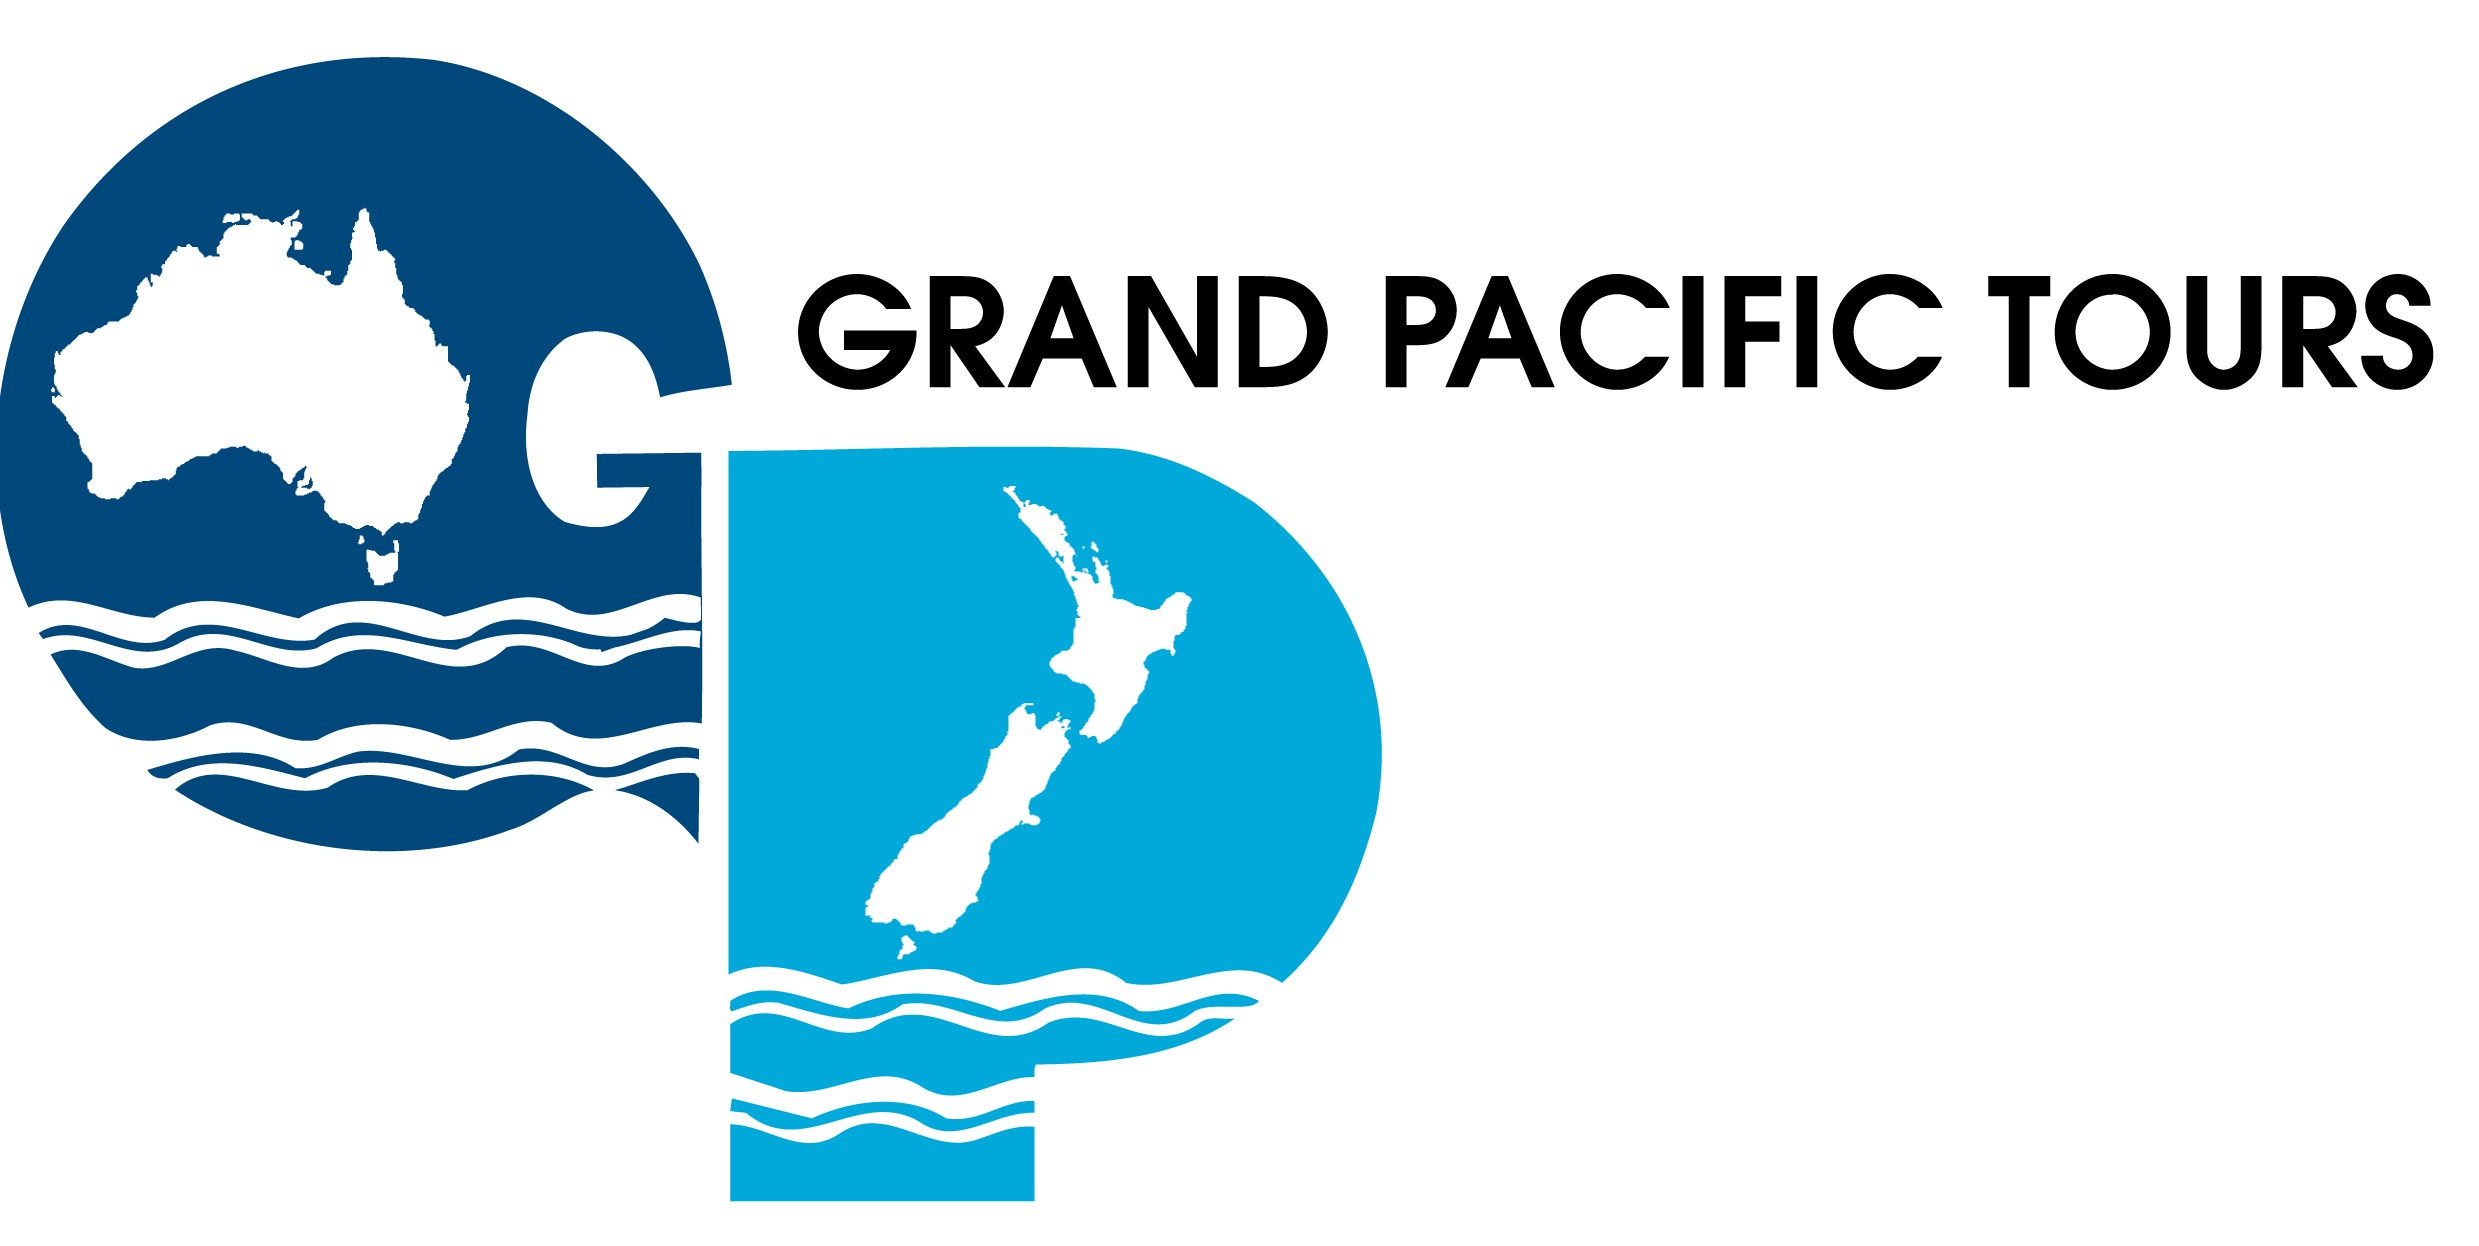 GRAND PACIFIC TOURS Logo